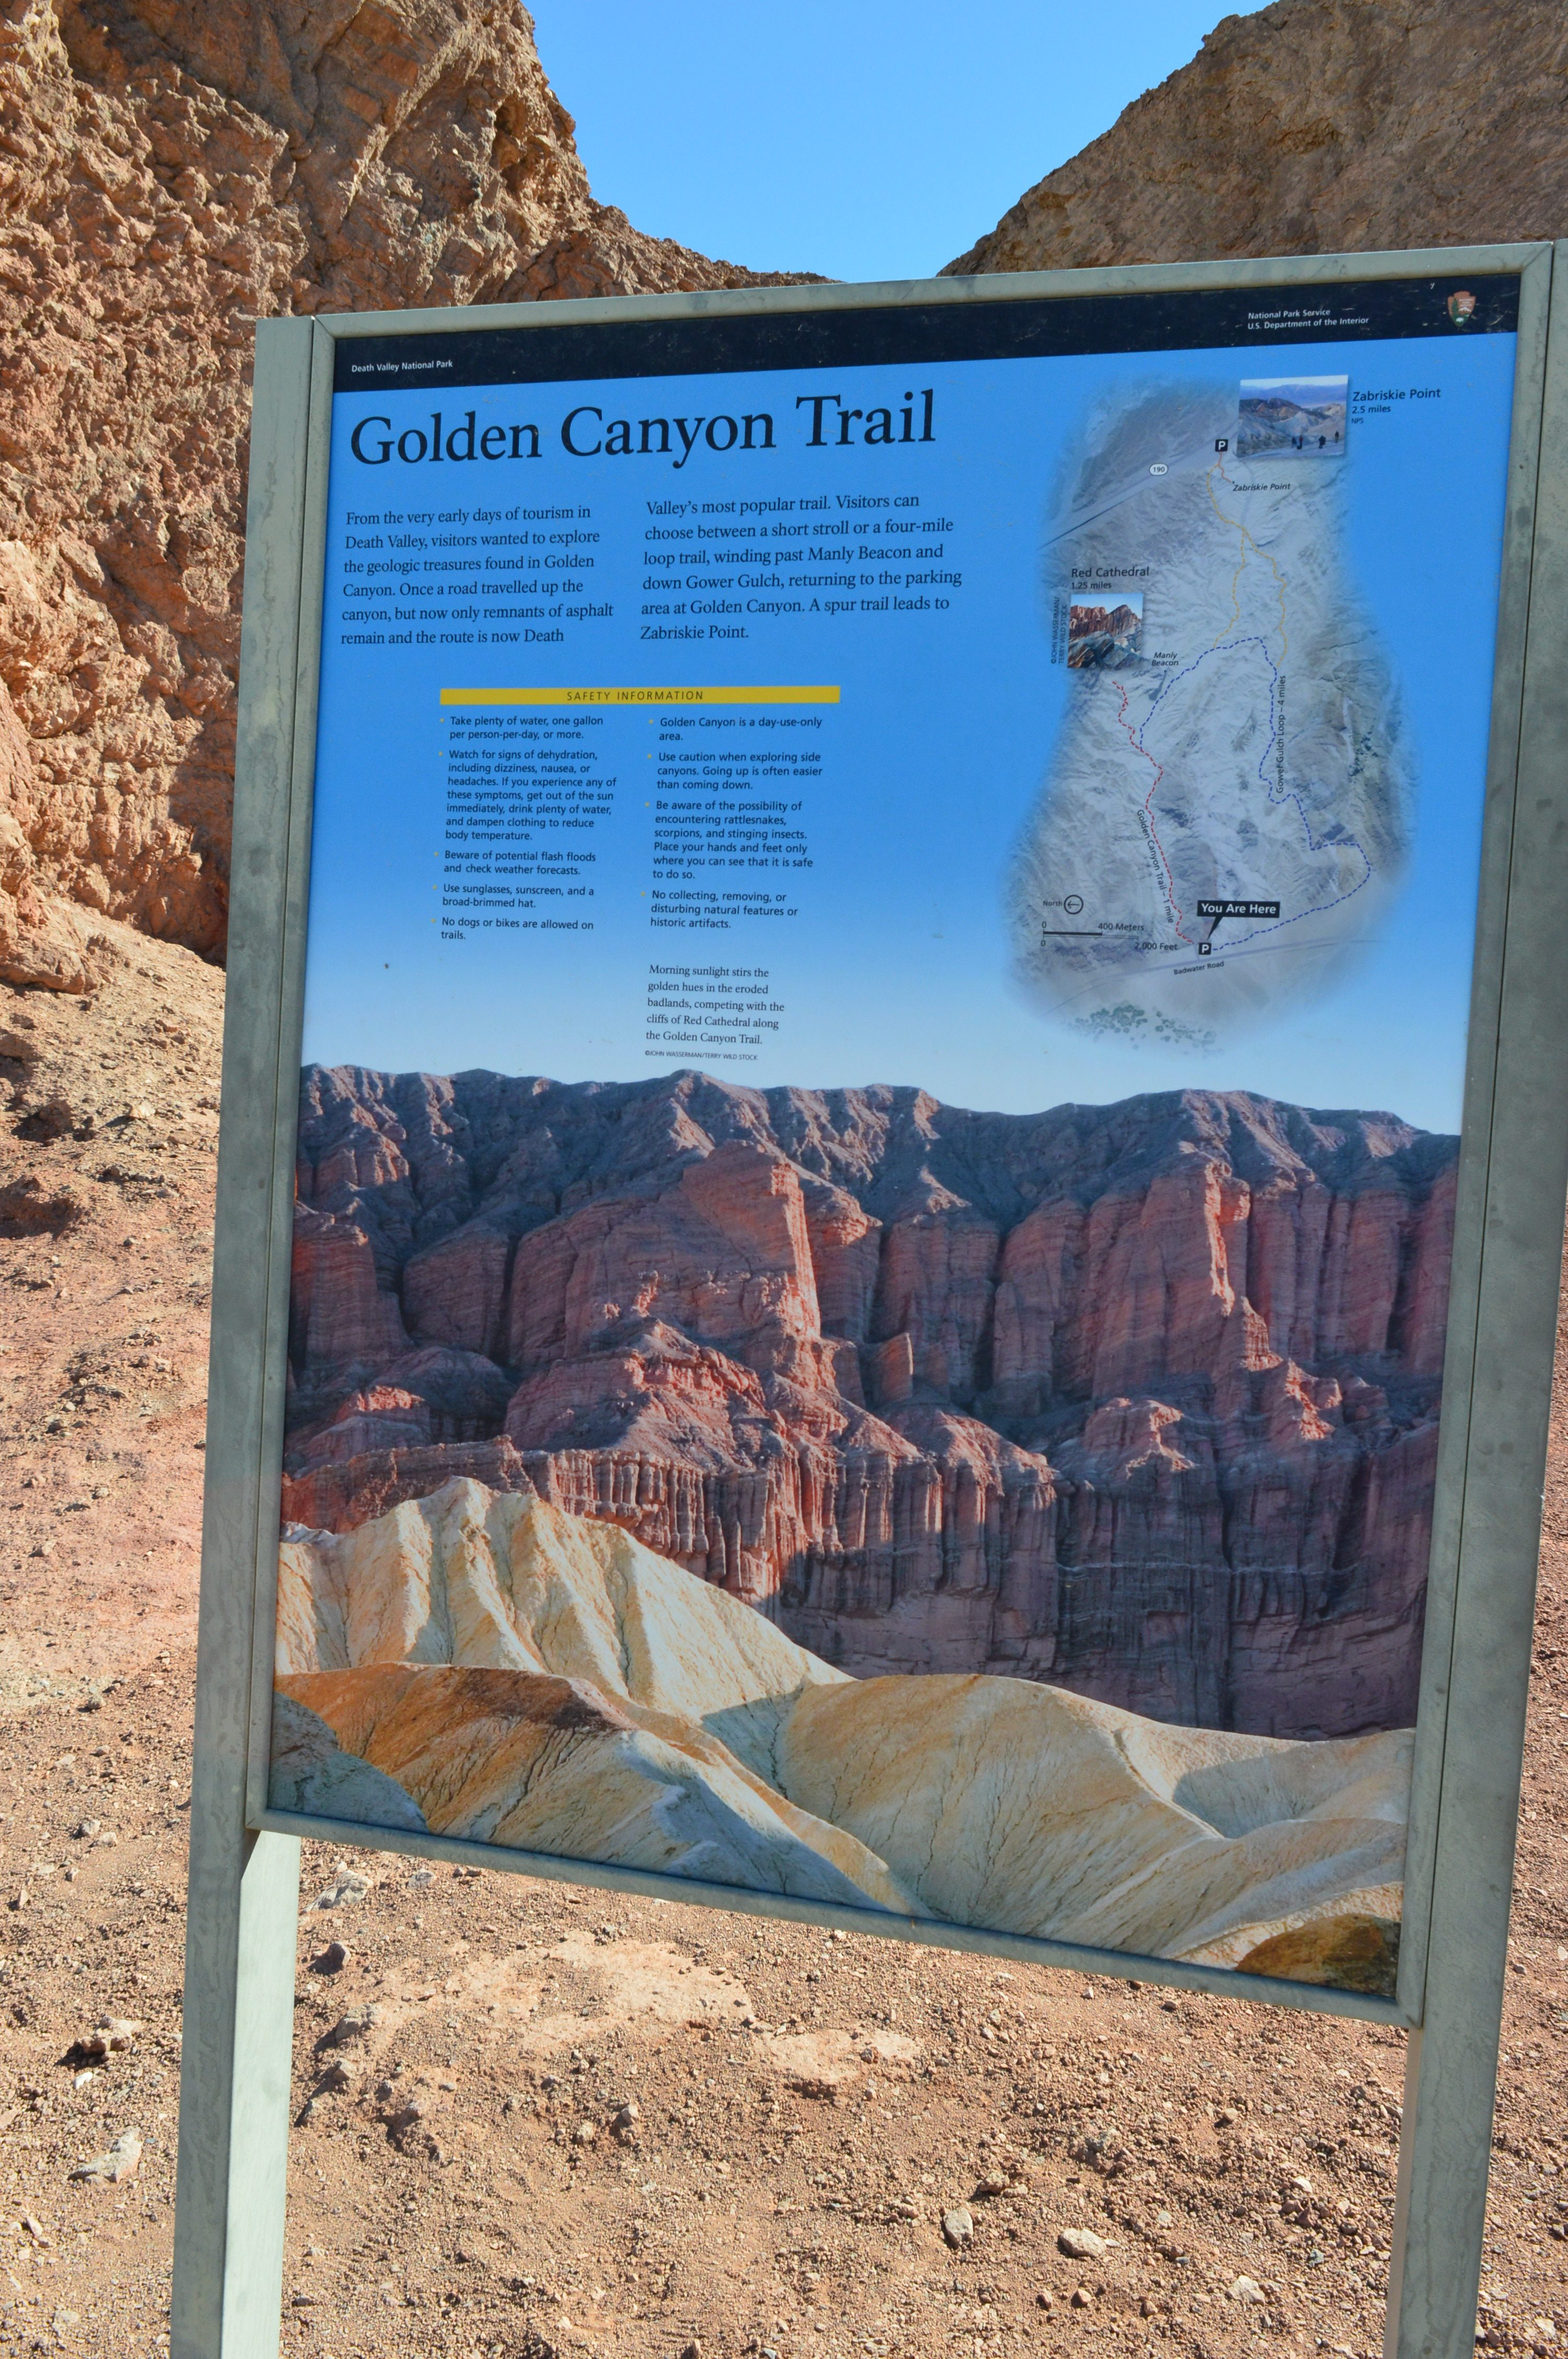 Golden Canyon Trail